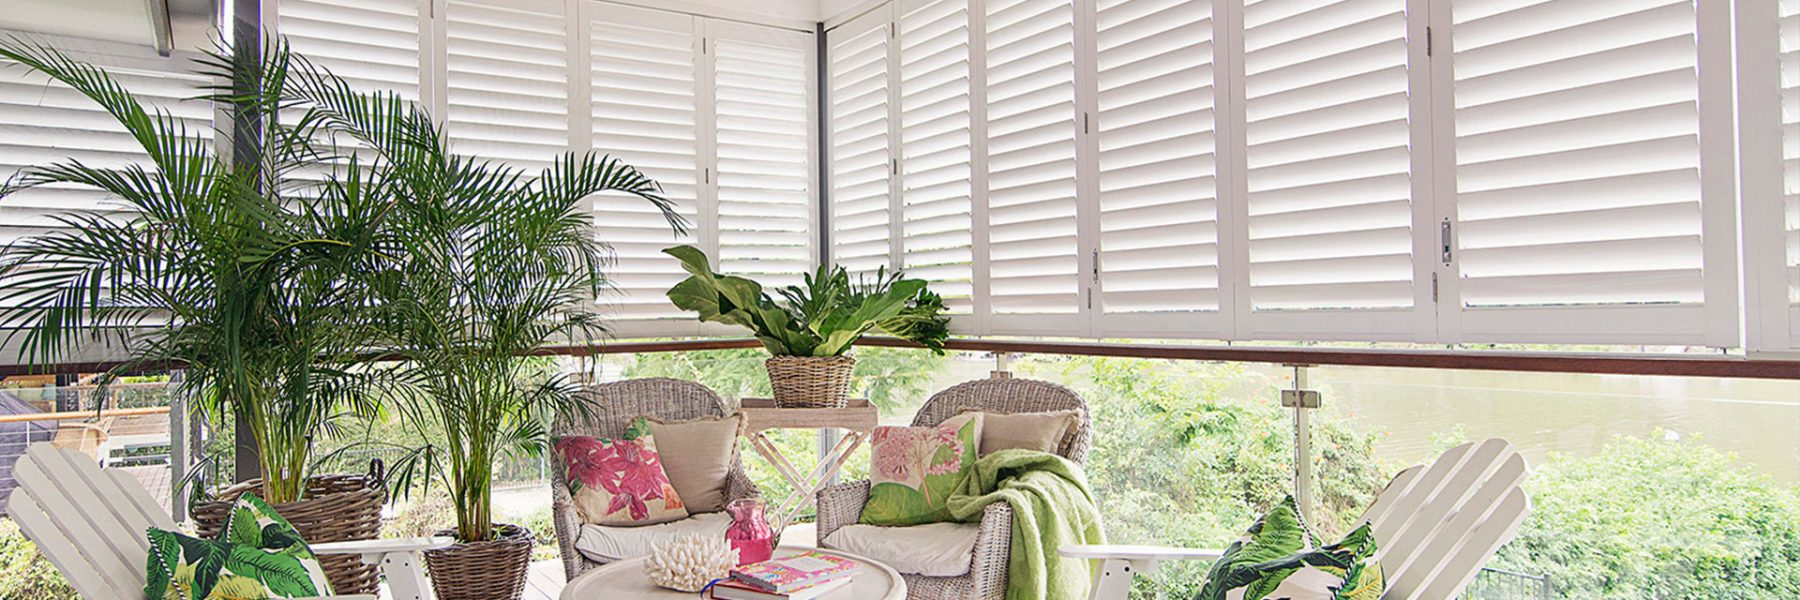 Allview Blinds, Shutters & Awnings Rockhampton & Sunshine Coast